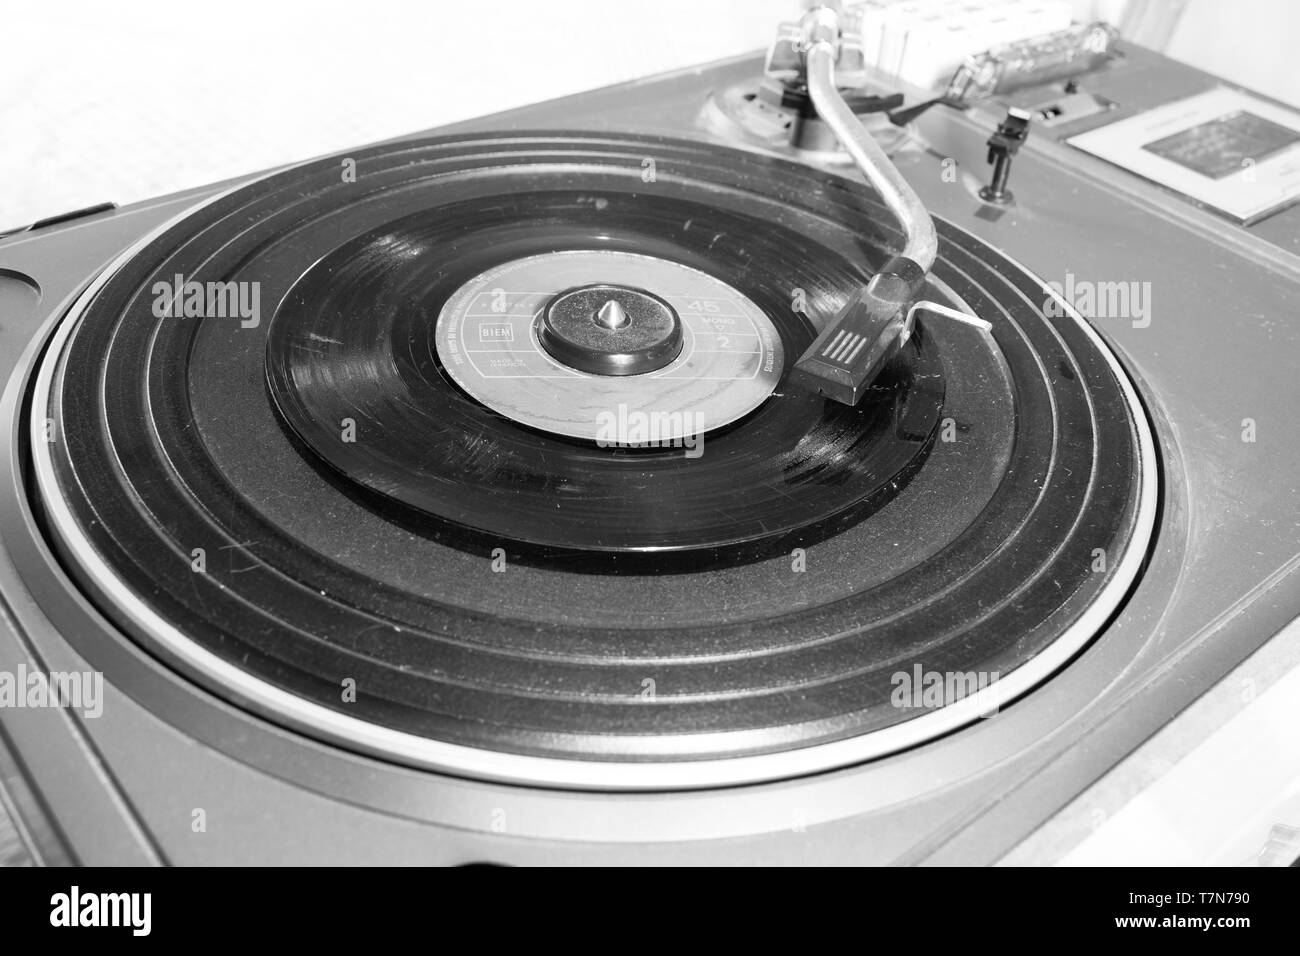 This is and old and antique turntable captured in black and white and you can see the scratches and old material of the player Stock Photo